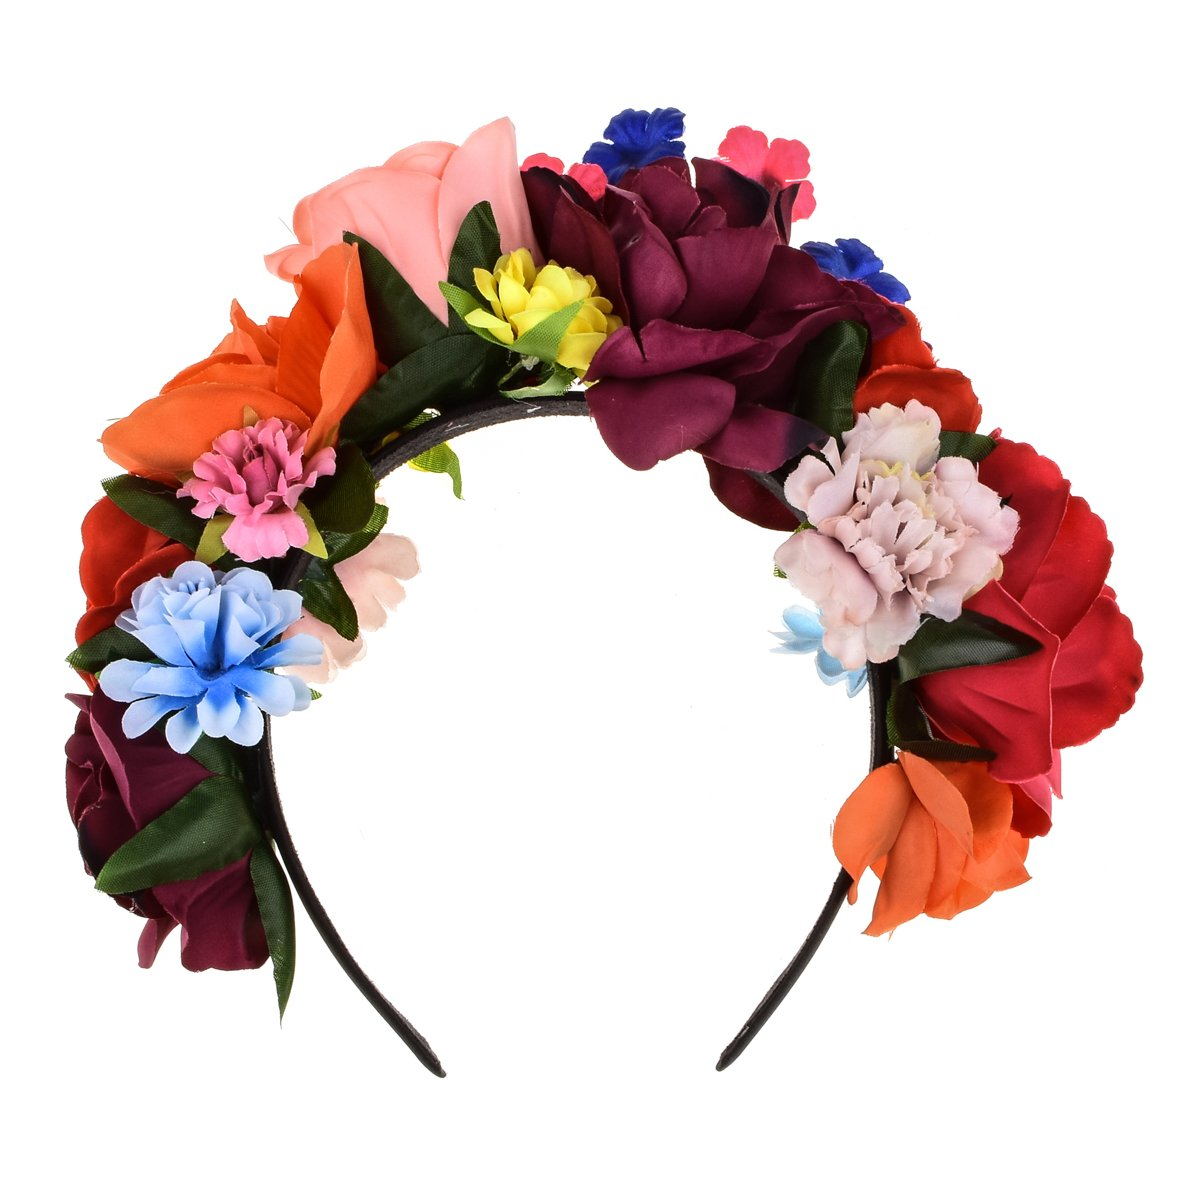 Frida Kahlo Mexican Flower Crown - DeluxeAdultCostumes.com